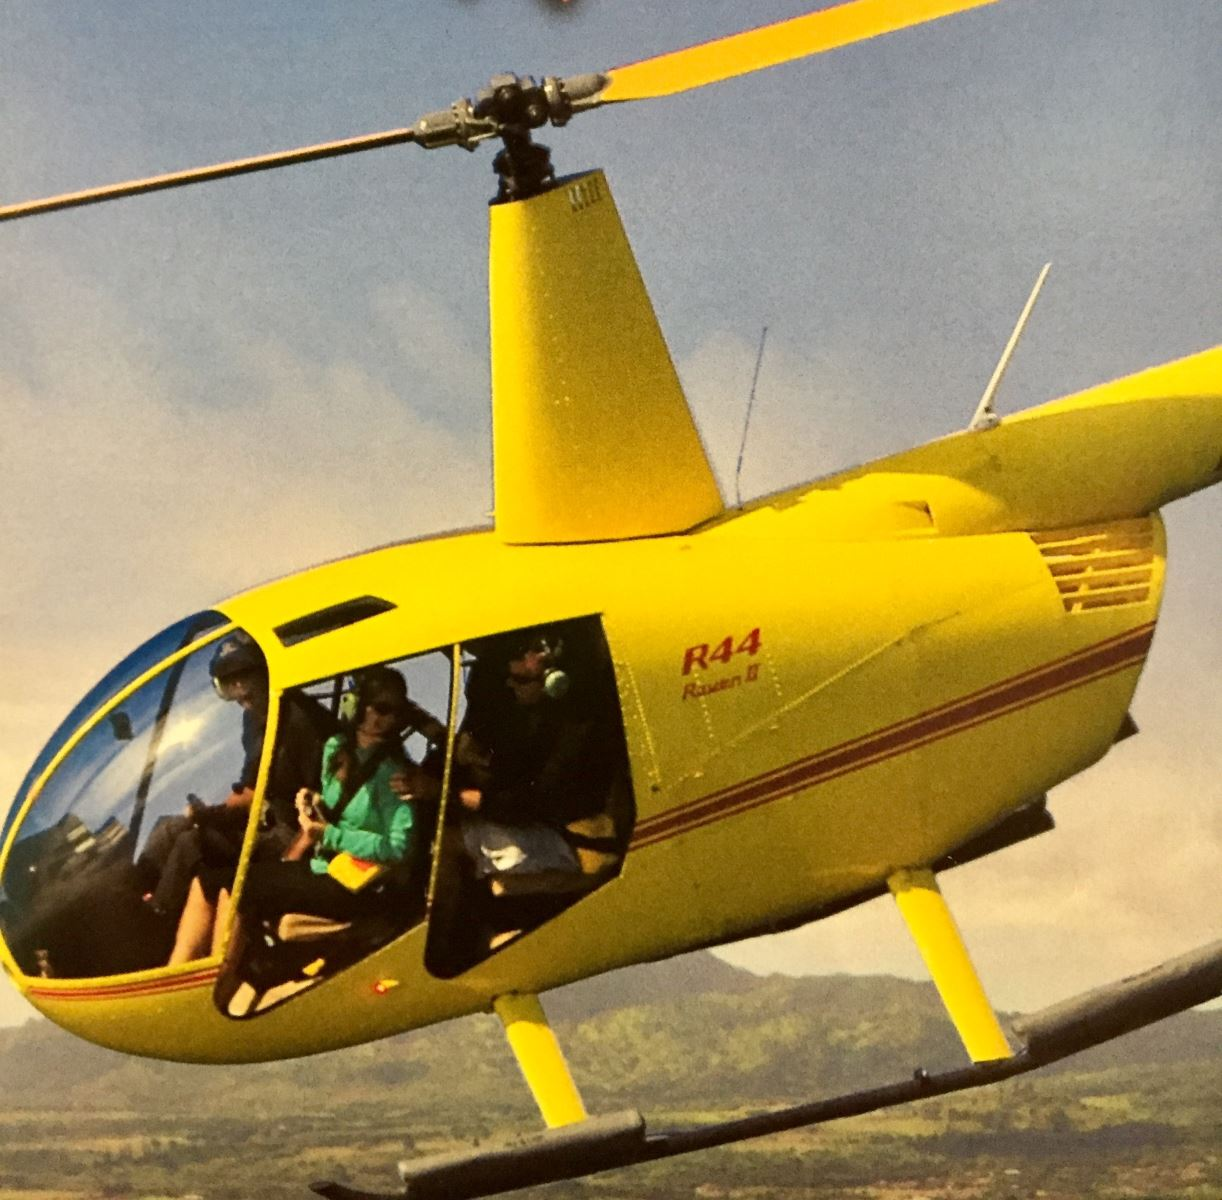 Product Exciting No Doors Helicopter Adventure